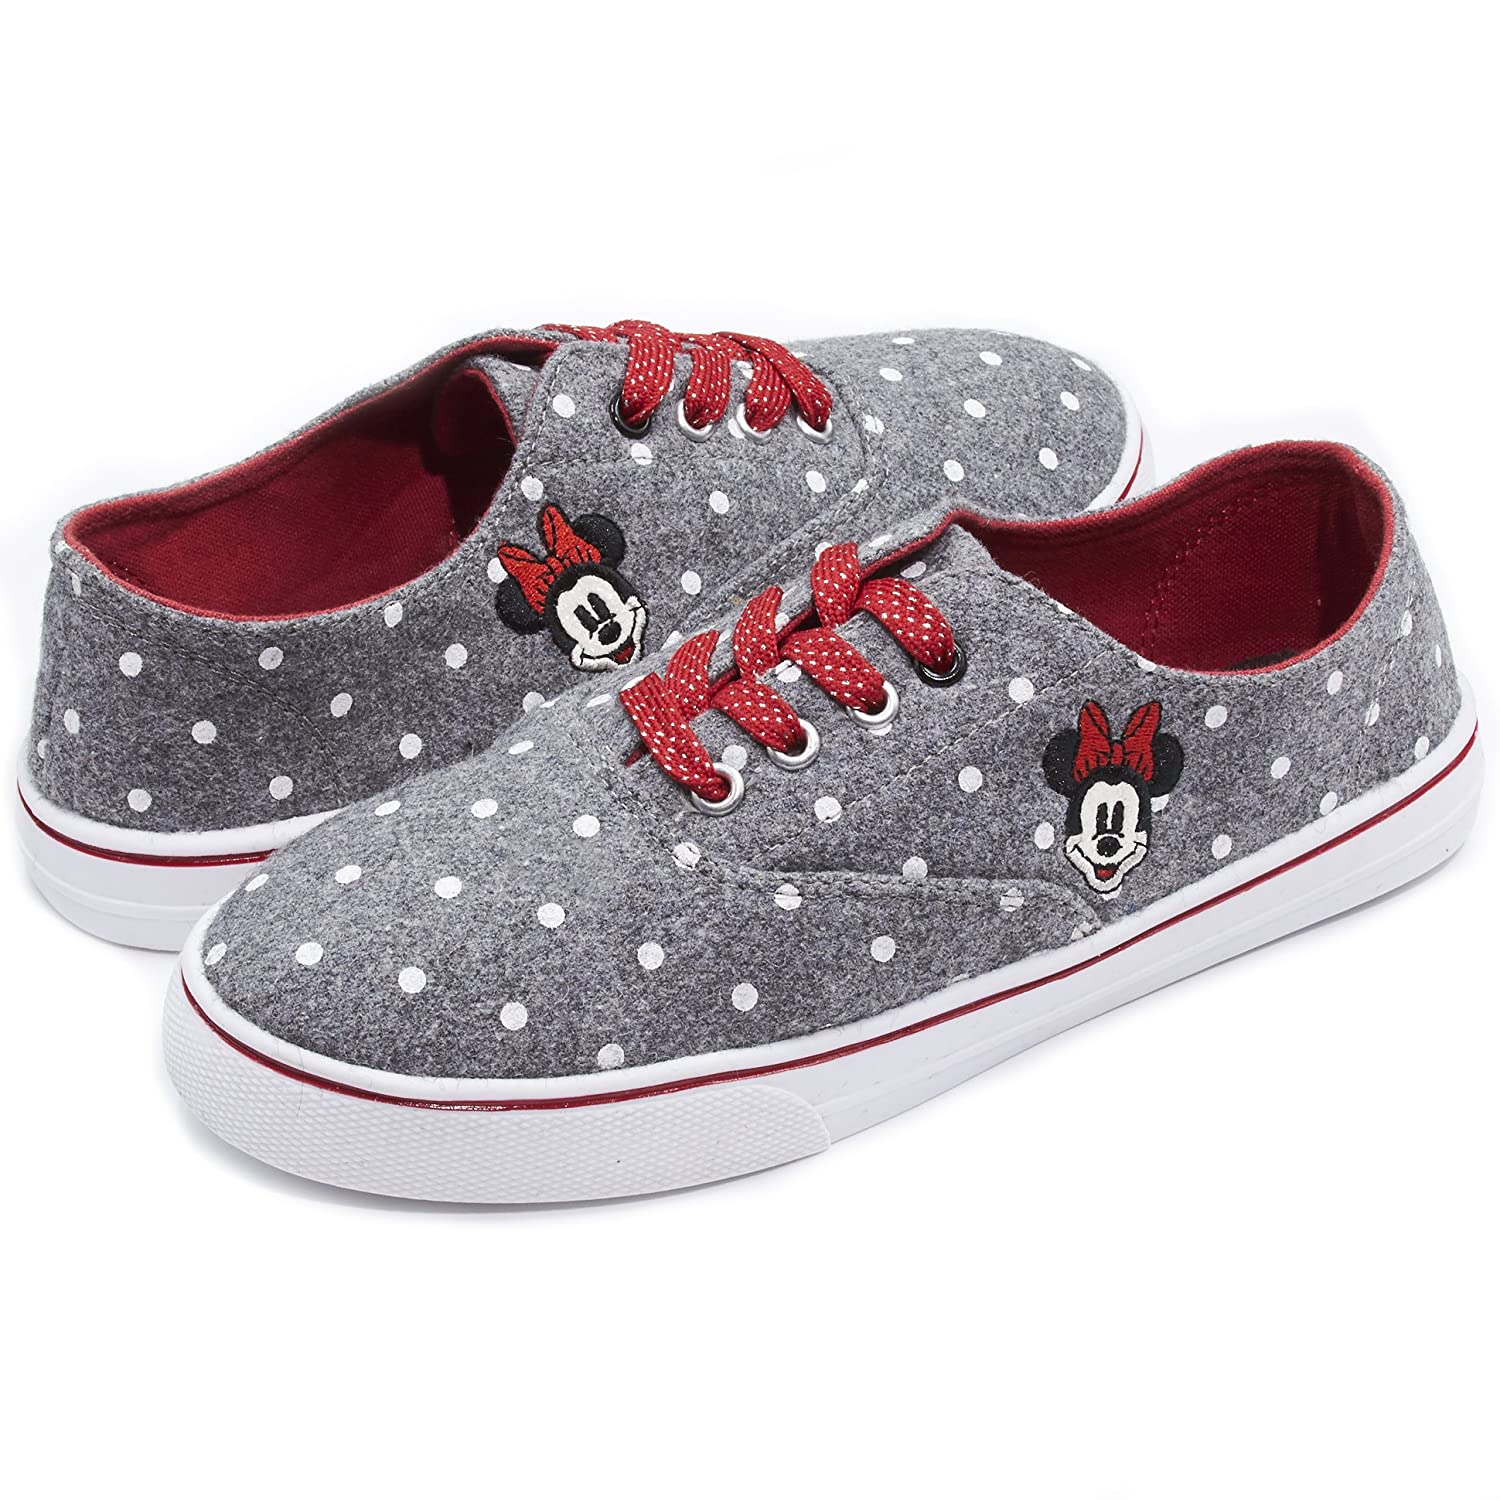 Disney Junior Mickey Teen Girls Low Top Mickey Junior and Minnie Fashion Sneakers (See More Designs and Sizes) B074CF8N15 11 B(M) US|Grey fcf3e0